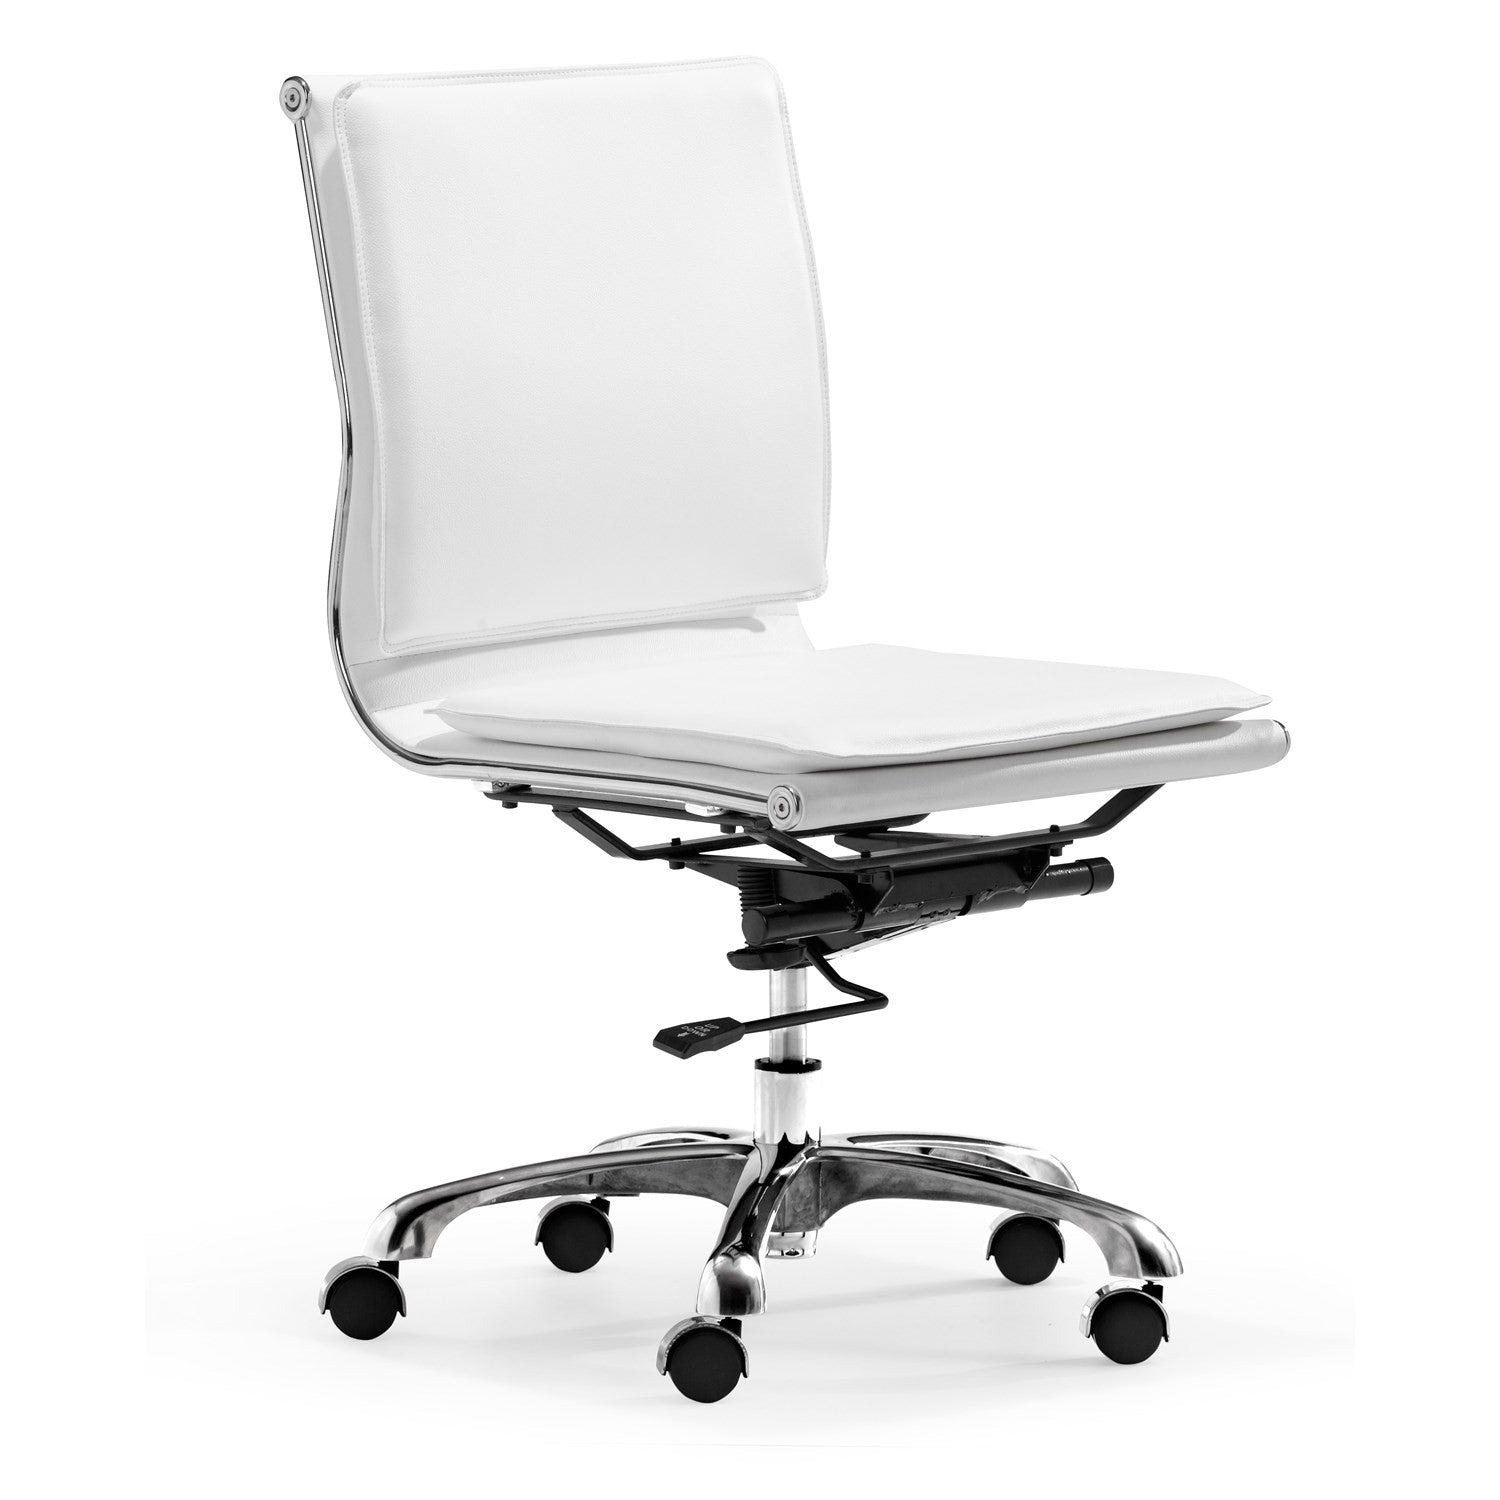 Modern Armless Office or Conference Chair in White